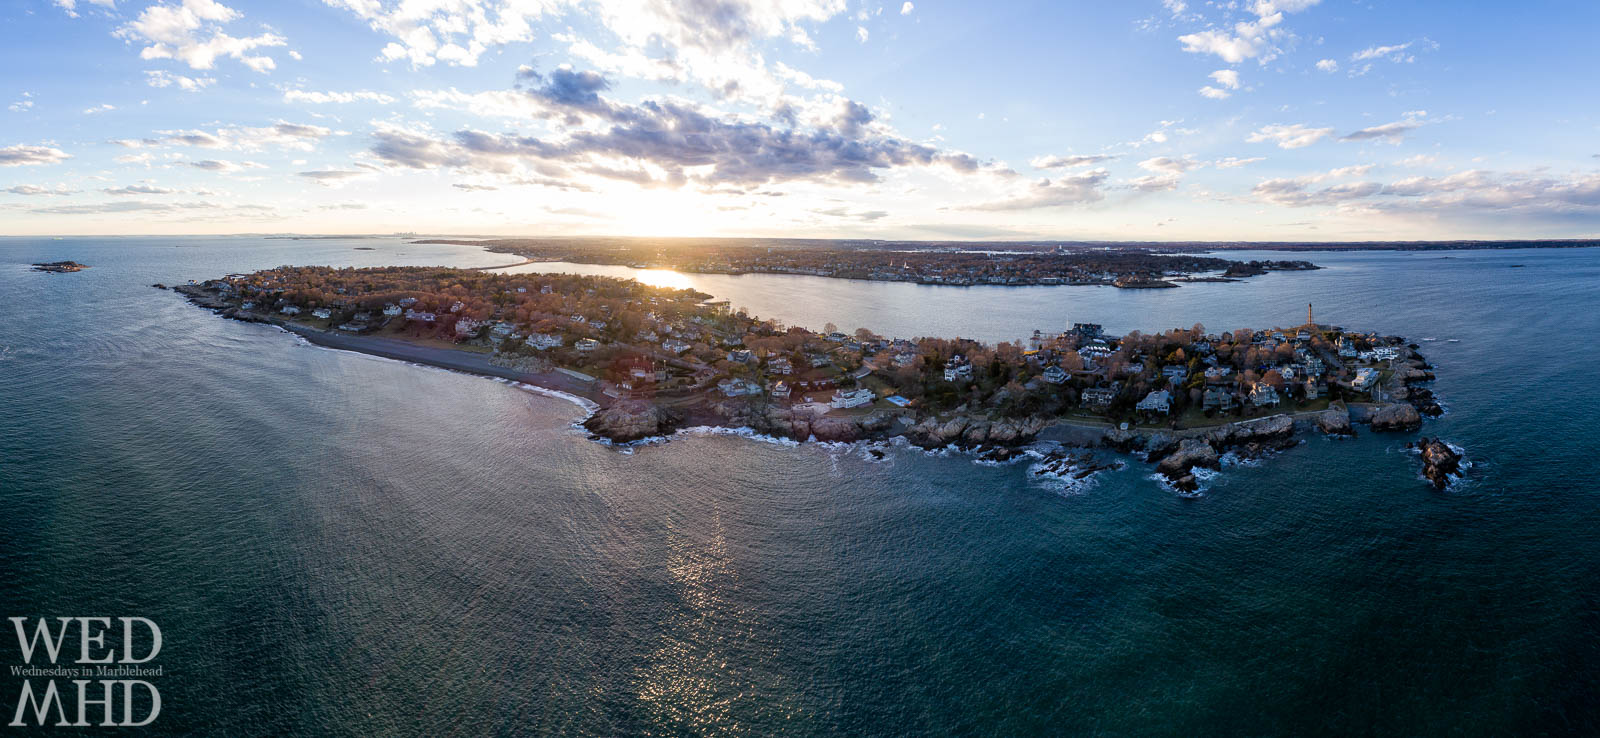 Tonight's sunset reflects as a golden glow on Marblehead Harbor in this panoramic view of Marblehead Neck from four hundred feet up